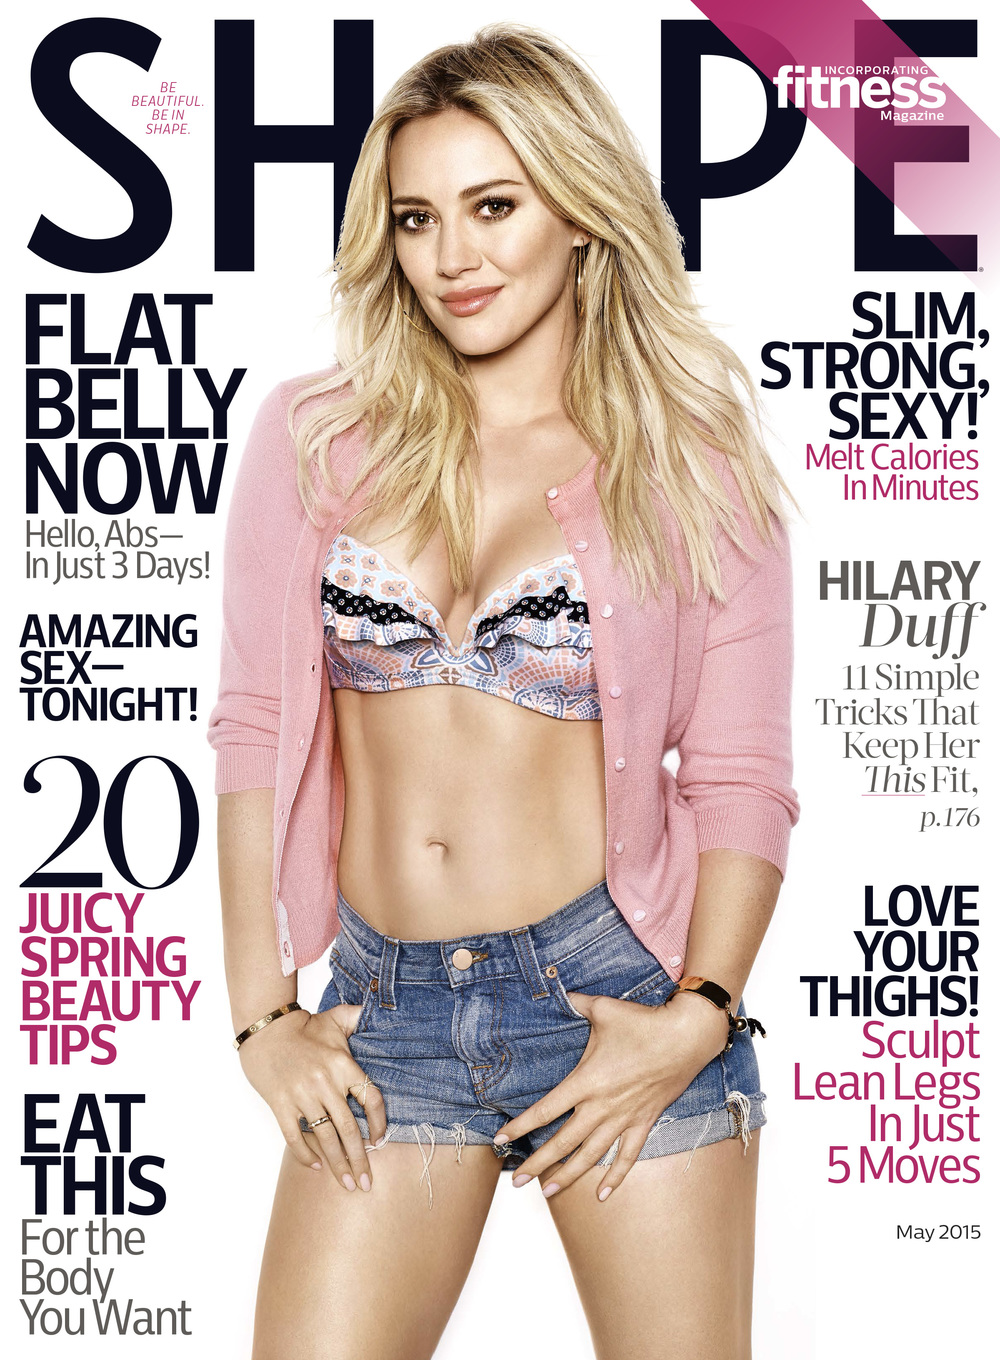 Hilary Duff, May 2015.